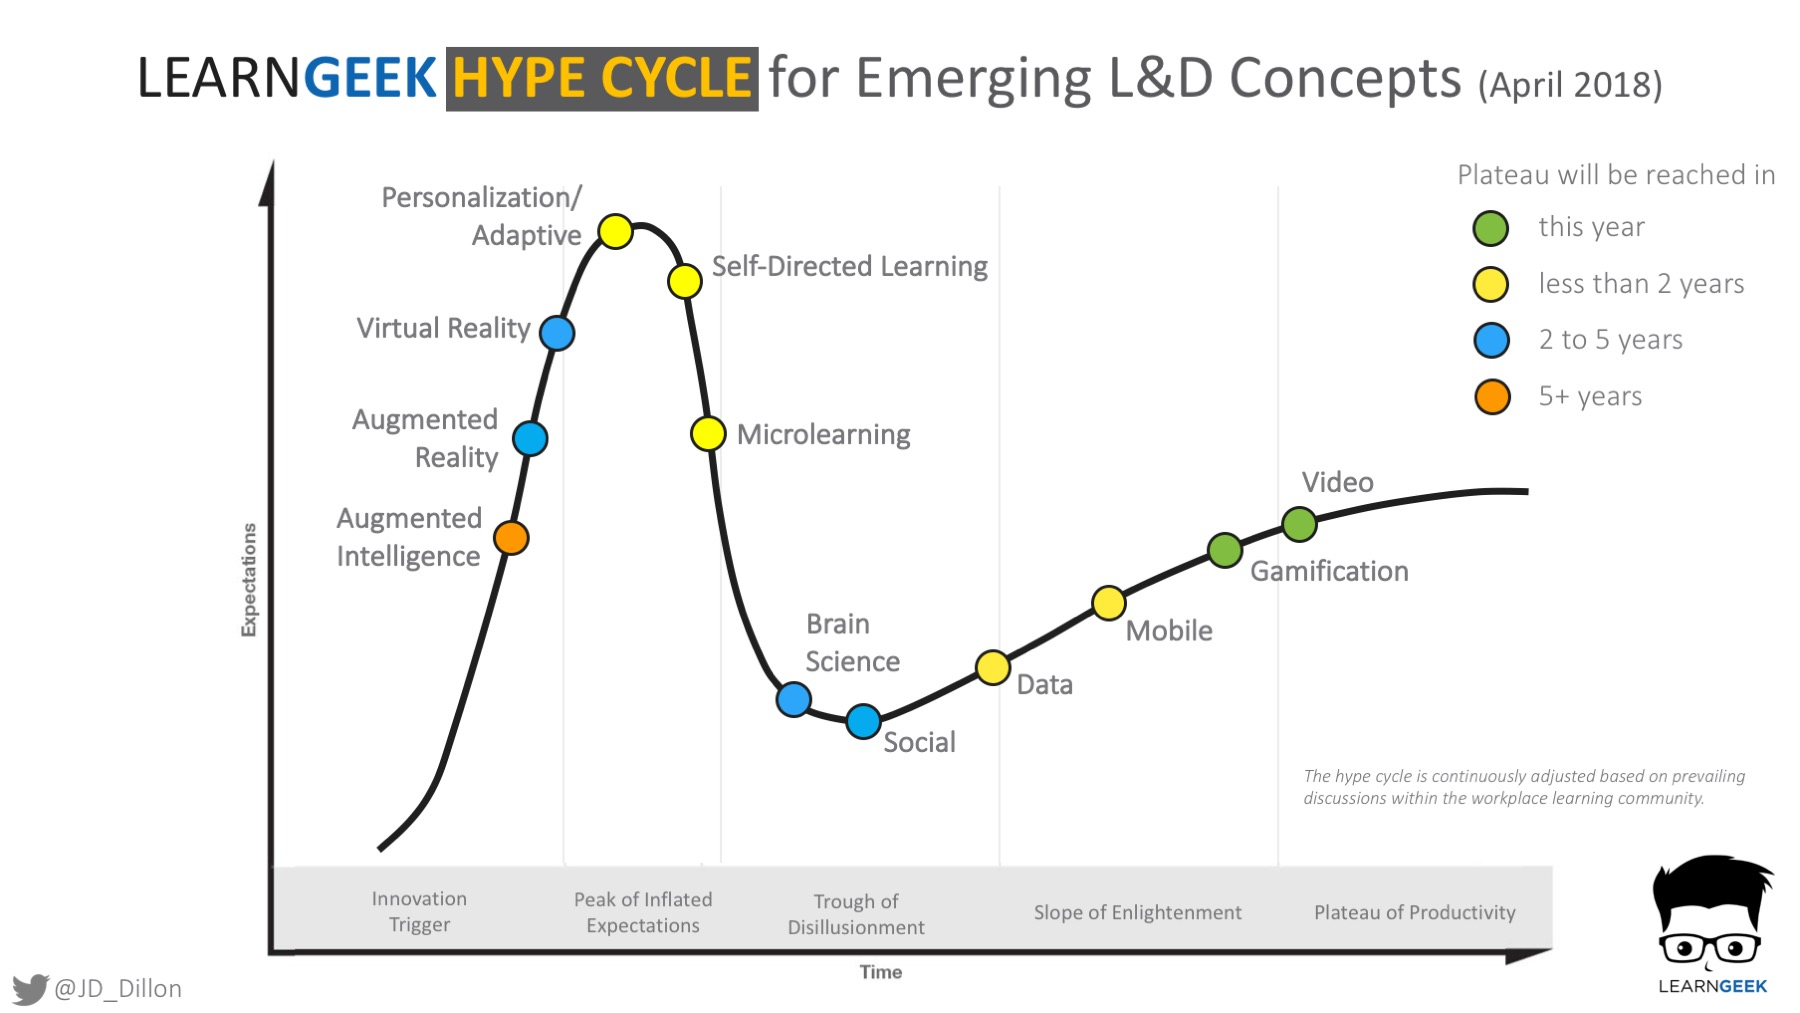 L&D topics graphed along a hype cycle curve